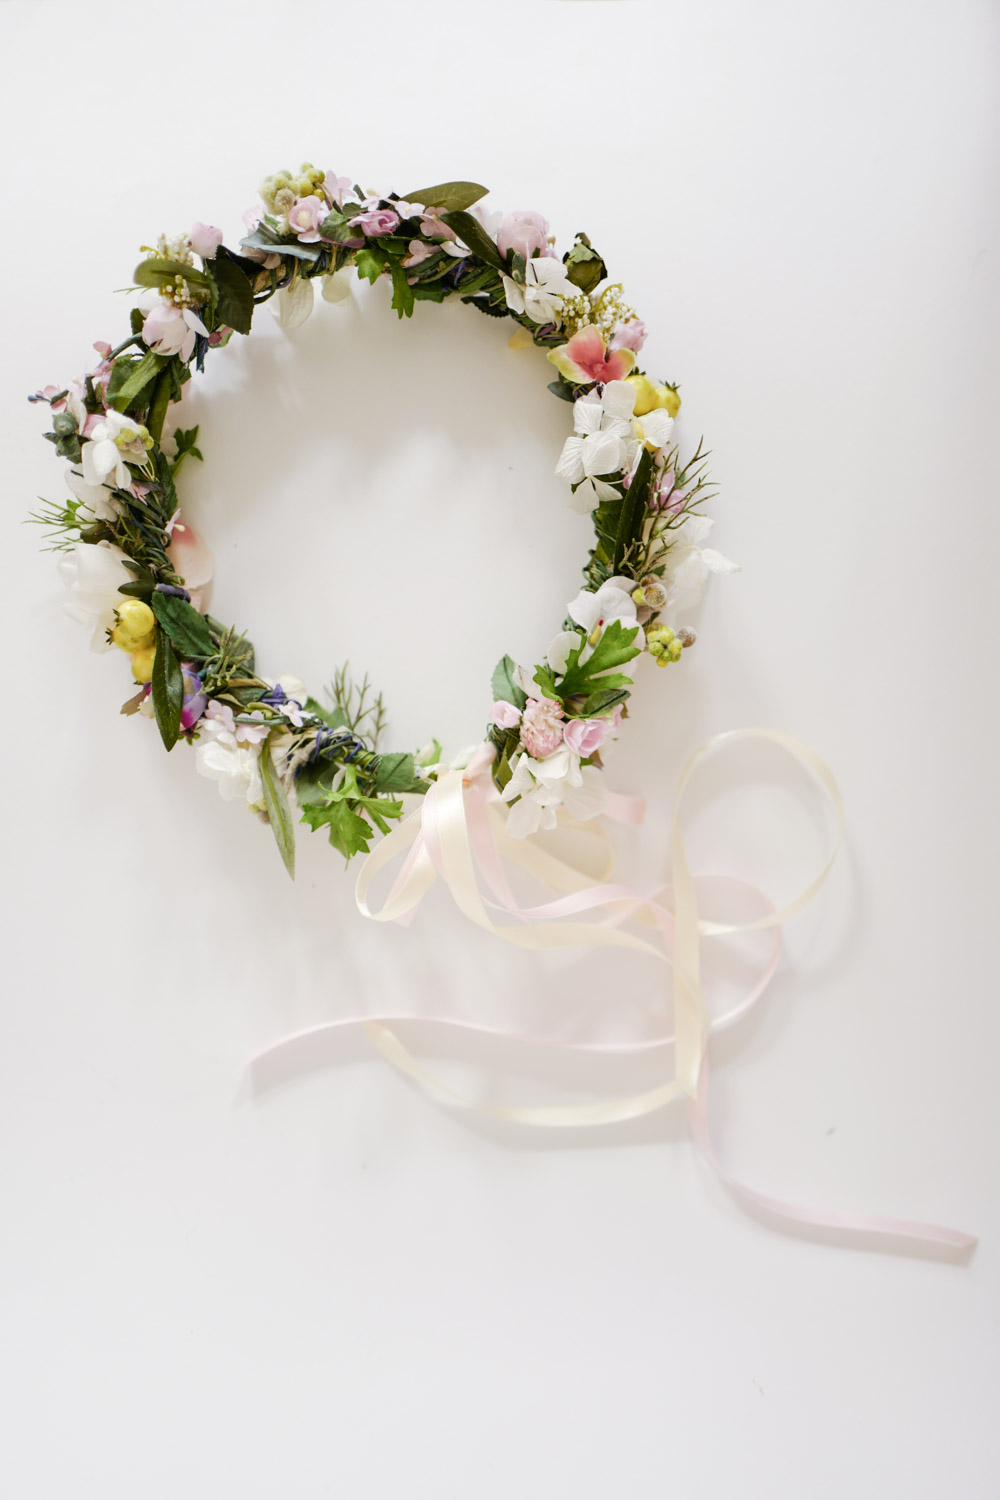 We-Are-Flowergirls_Brides_SS17_Flowercrown_[L1010856].jpg